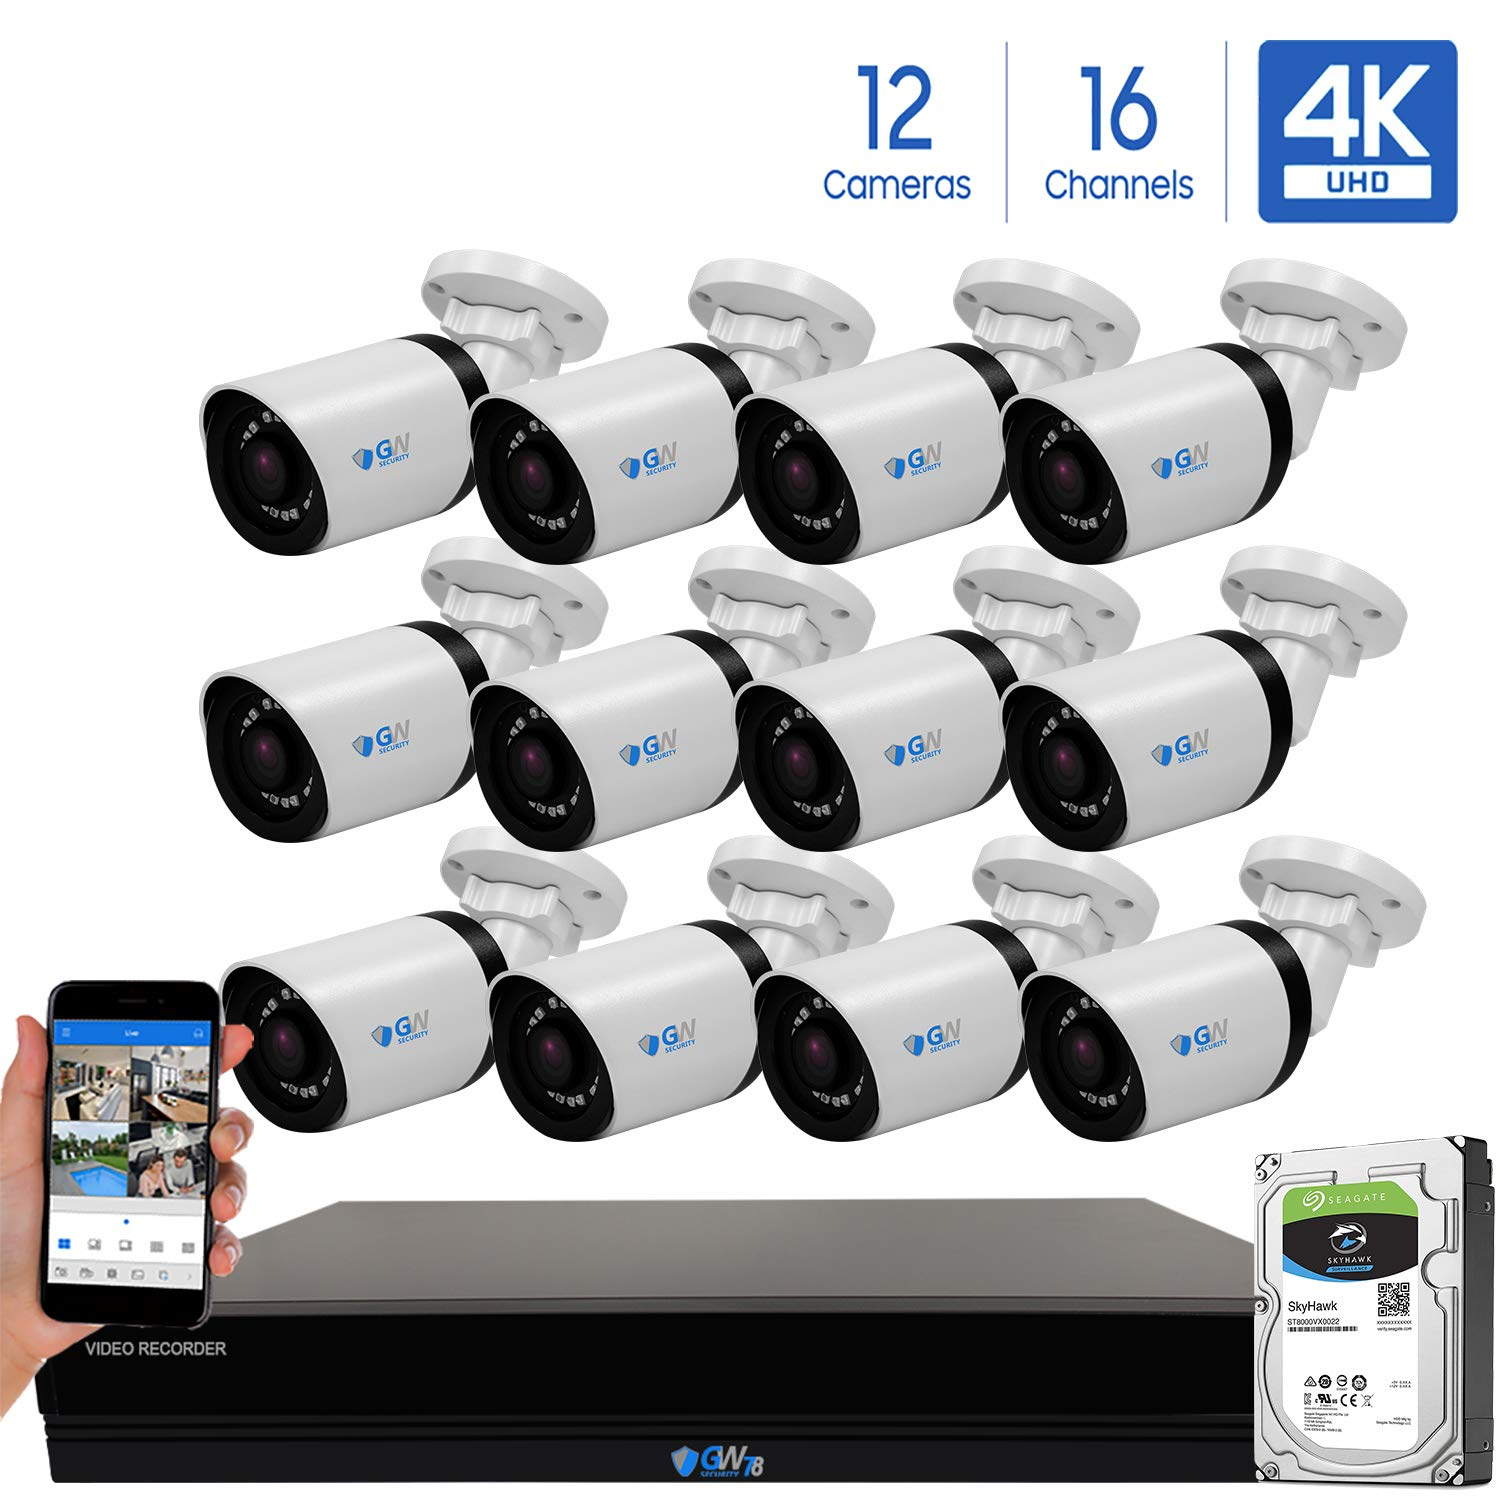 GW 16 Channel 4K H.265 CCTV DVR Security System with 12 x HD 8MP 2160P Outdoor Indoor 4K Bullet Security Cameras, 100ft Night Vision, 4TB Hard Drive Pre-Installed